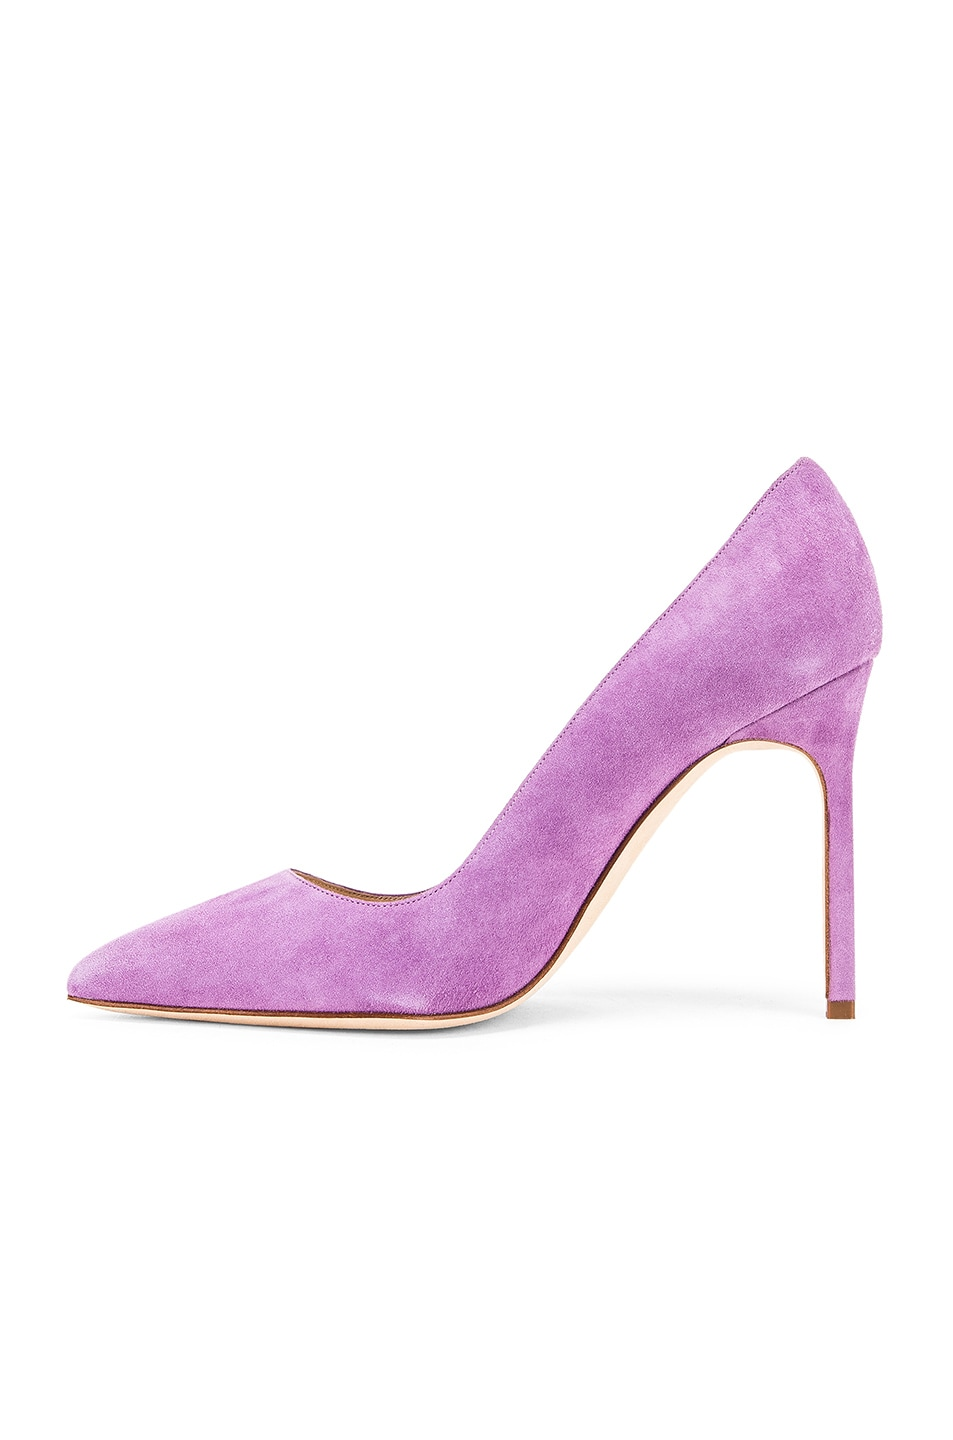 Image 5 of Manolo Blahnik BB 105 Pump in Lilac Purple Suede